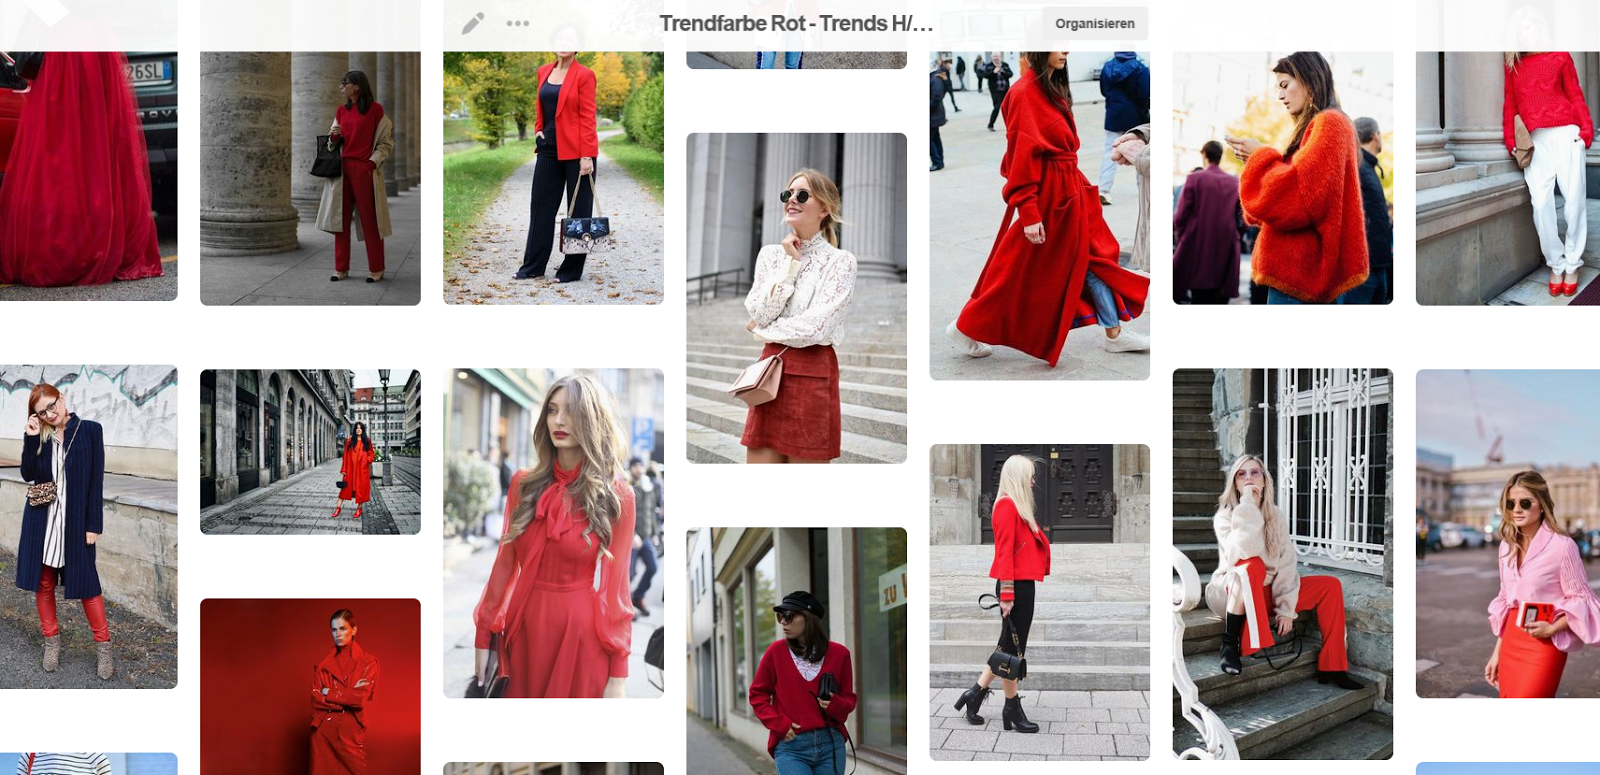 https://www.pinterest.de/yourlookinlife/trendfarbe-rot-trends-hw-2017/